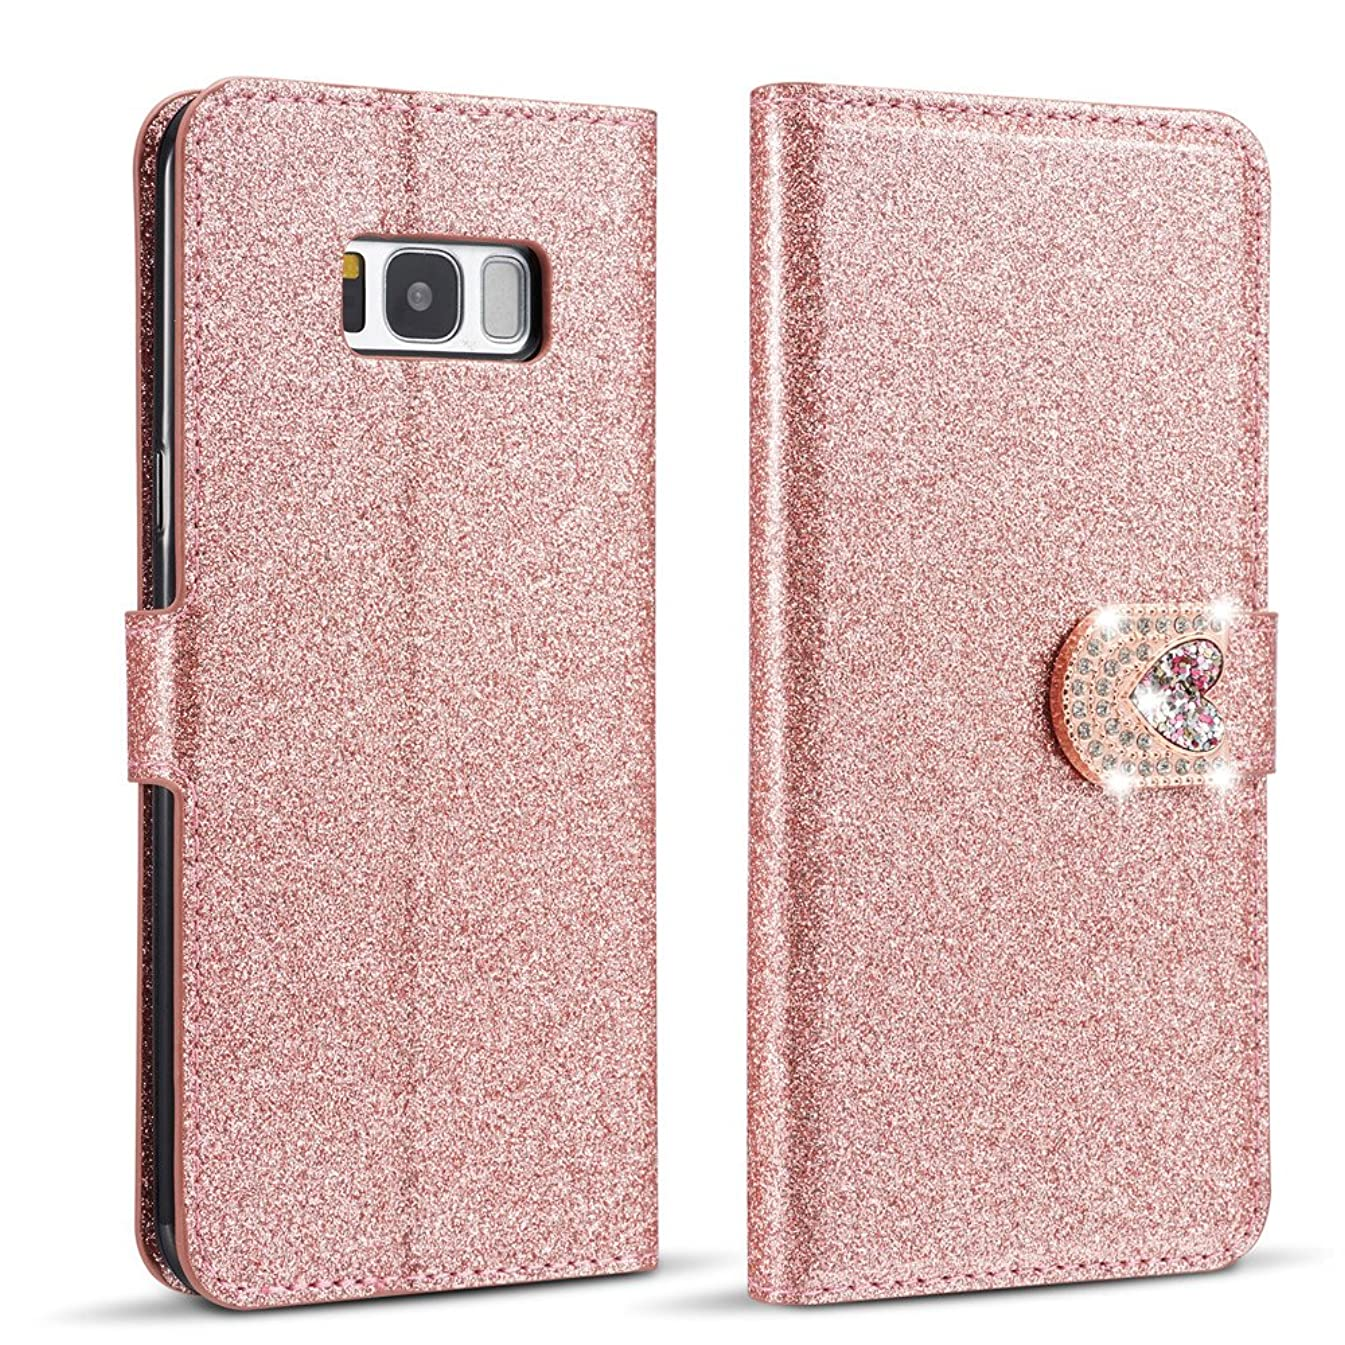 ZCDAYE Bling Glitter [Magnetic Closure] PU Leather Flip Wallet [Love Diamond Buckle] Folio Inner Soft TPU Smooth Finish Stand Cover Case for Samsung Galaxy S8 Plus 6.2 inch - Rose Gold